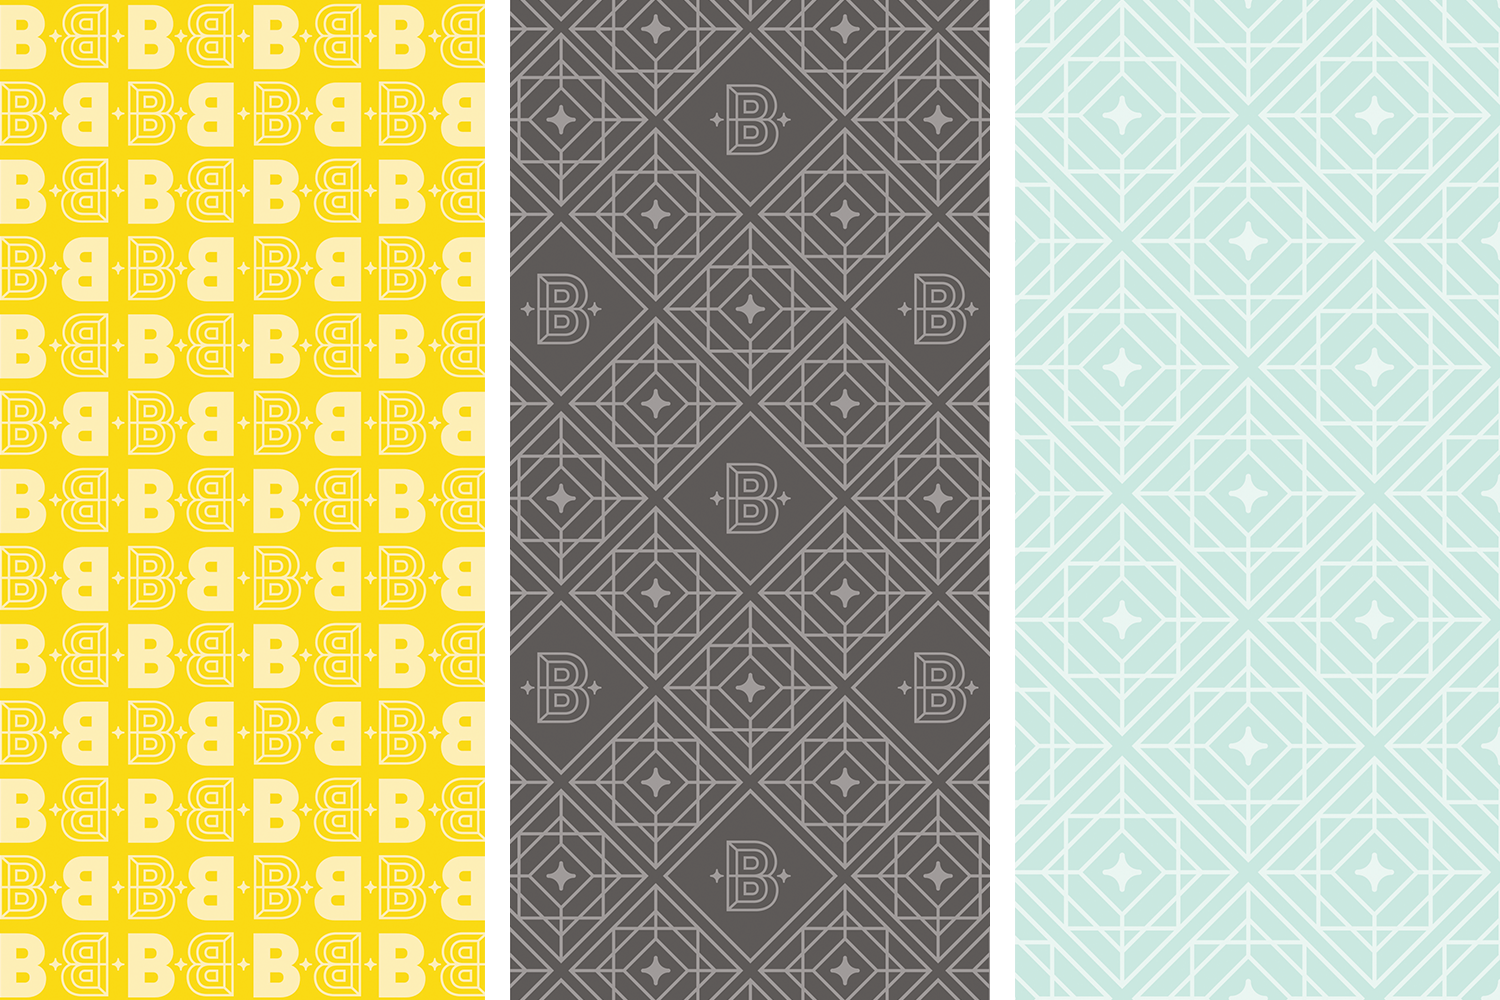 Brightside Creative Solutions pattern design by Pace Creative Design Studio